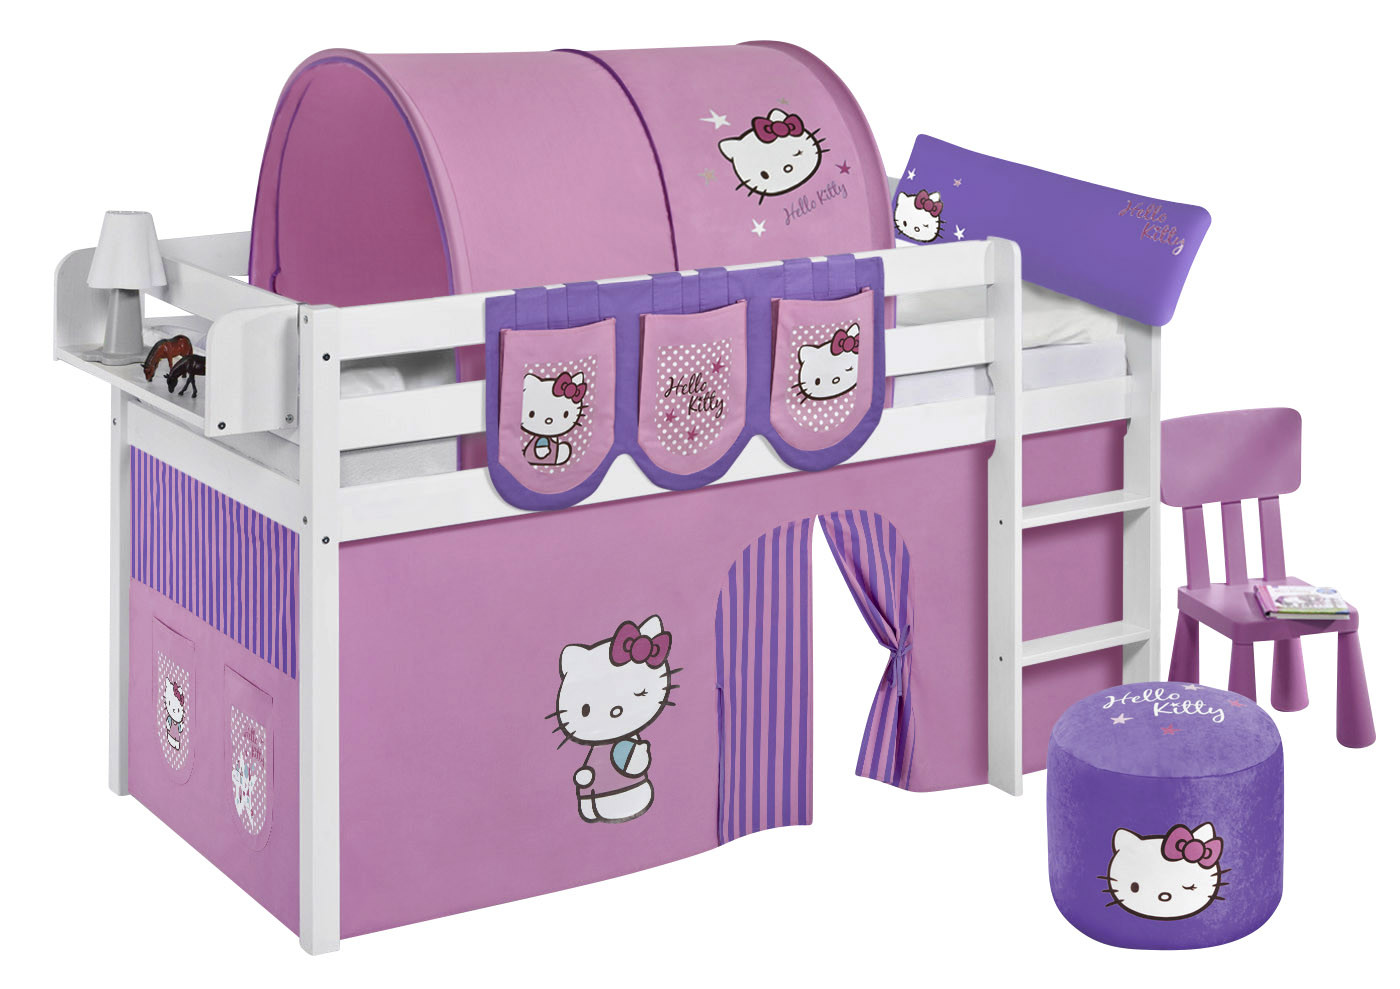 Basis Betten-Jelle Weiß-90x200-Hello Kitty Lila